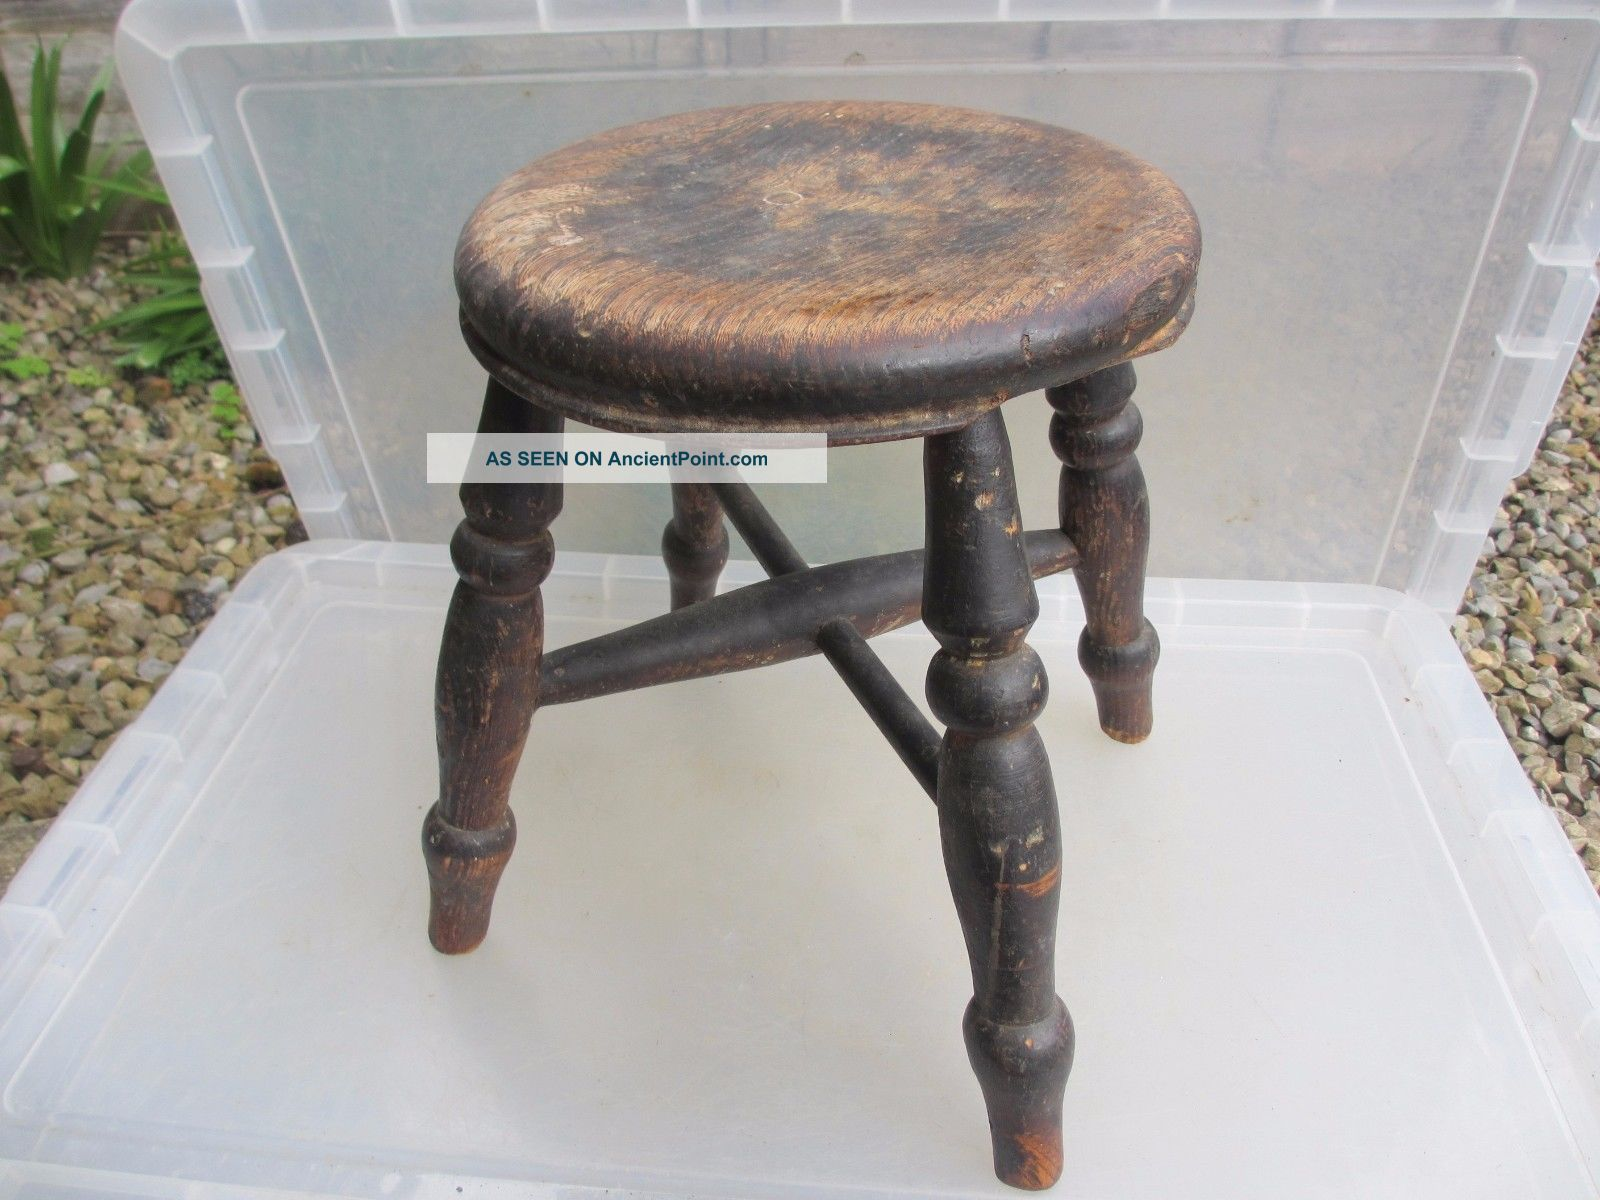 Antique Wooden Stool Bench Seat Children Kids Milking Vintage French Old 1900-1950 photo